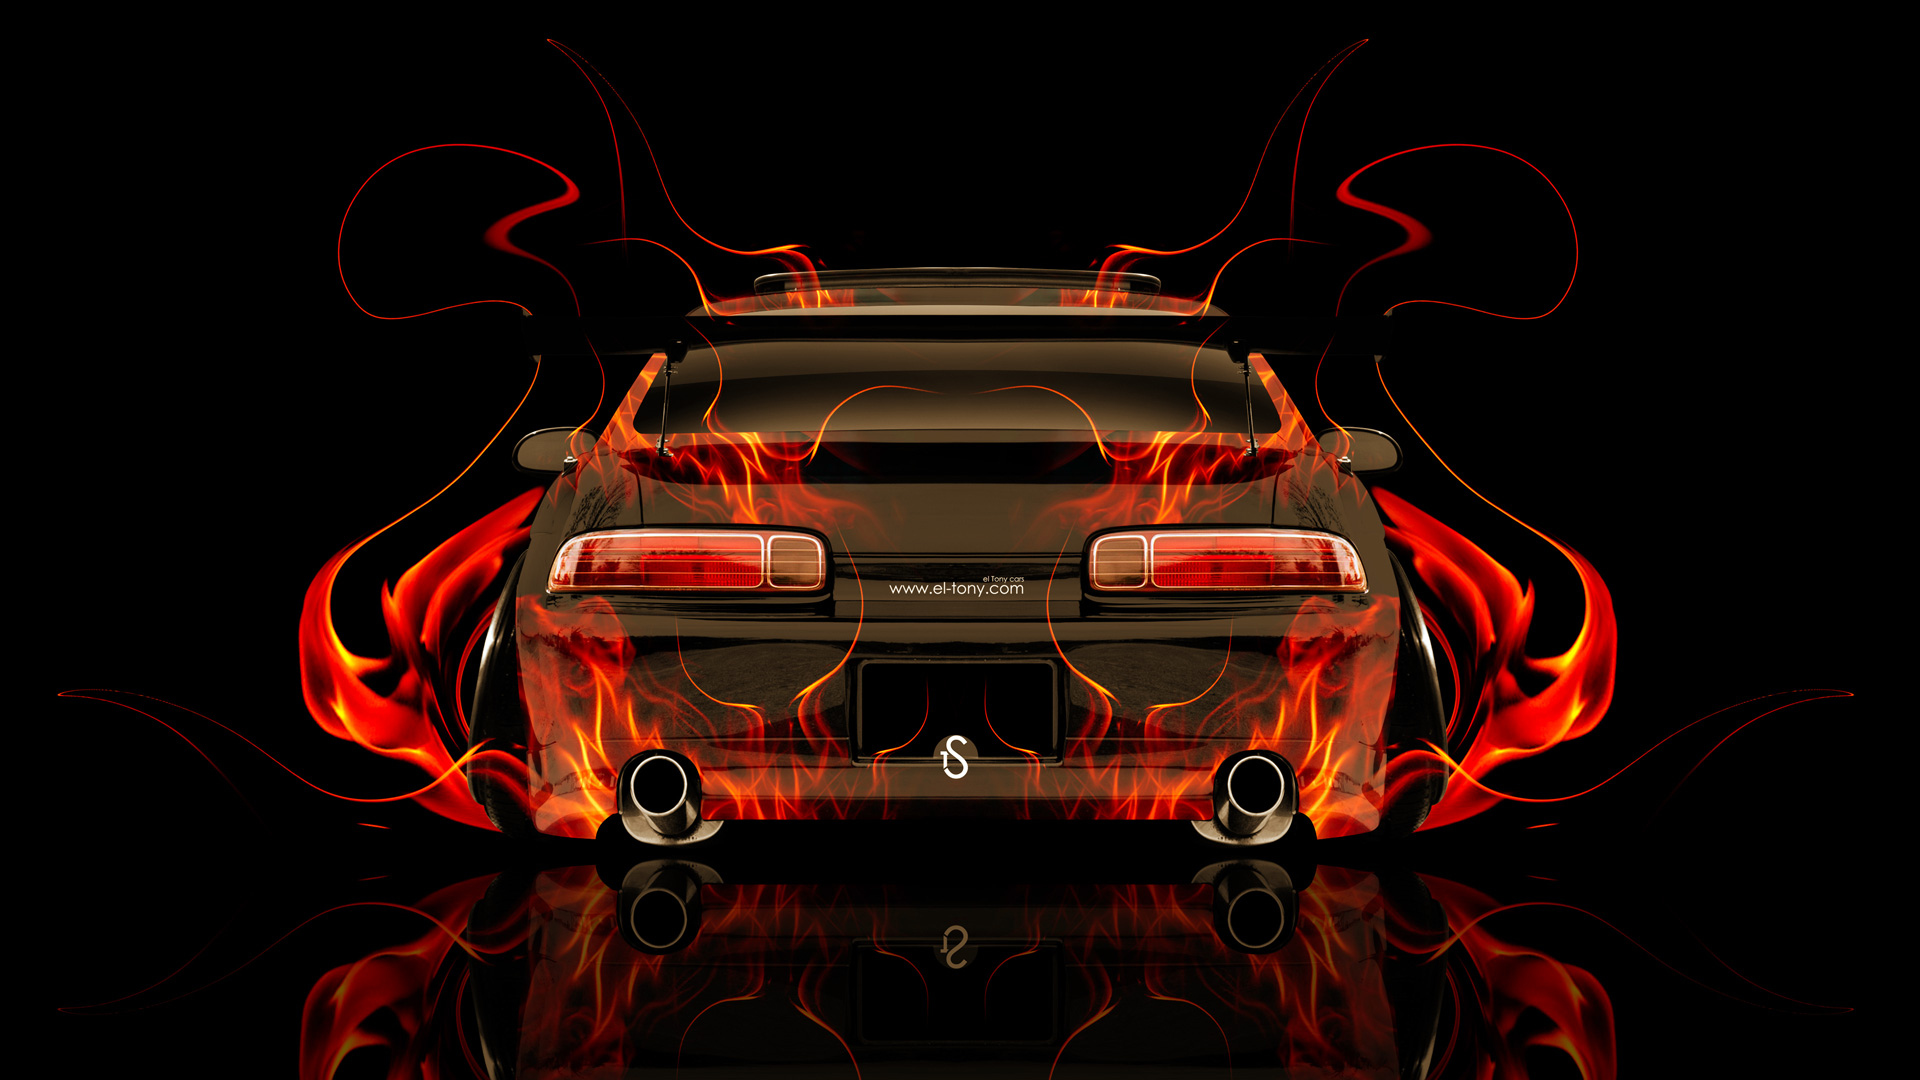 Etonnant Toyota Soarer JDM Tuning Back Fire Abstract Car